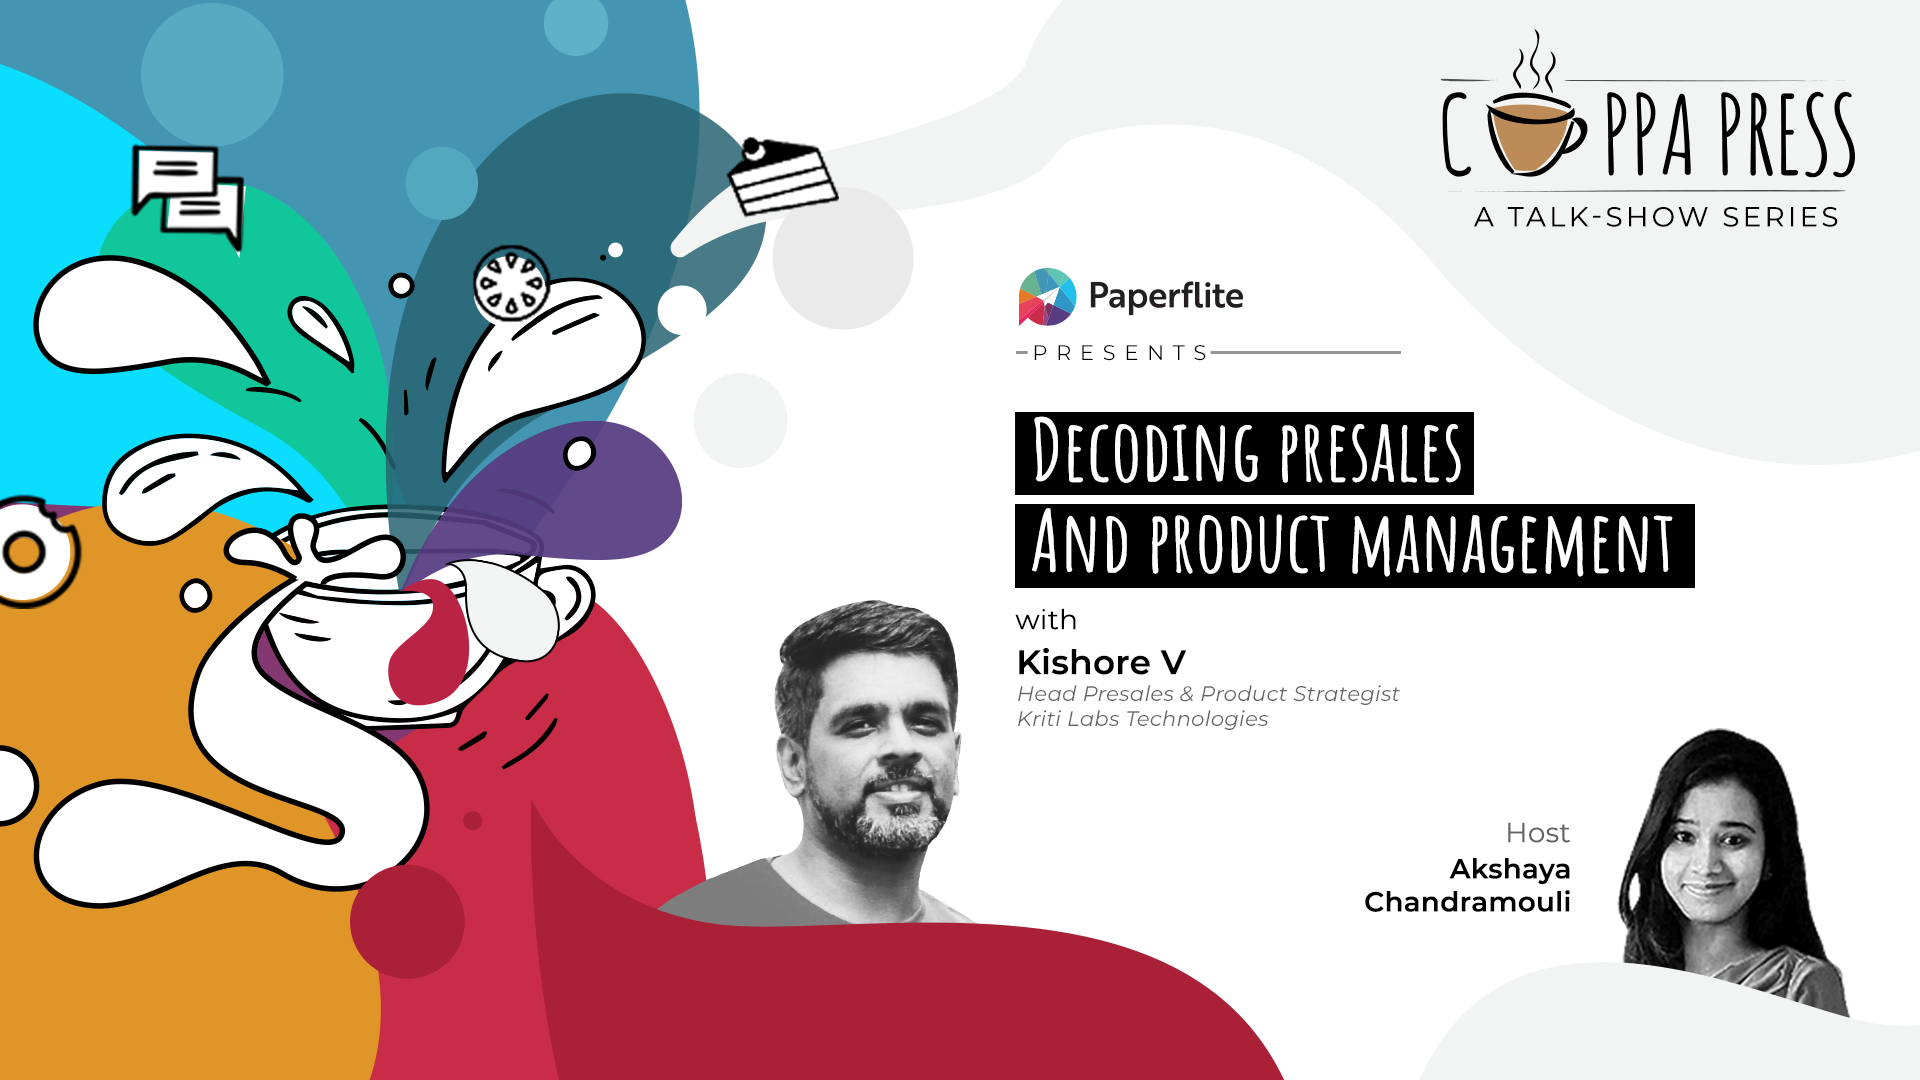 Decoding Presales and Product Management - Cuppa Press